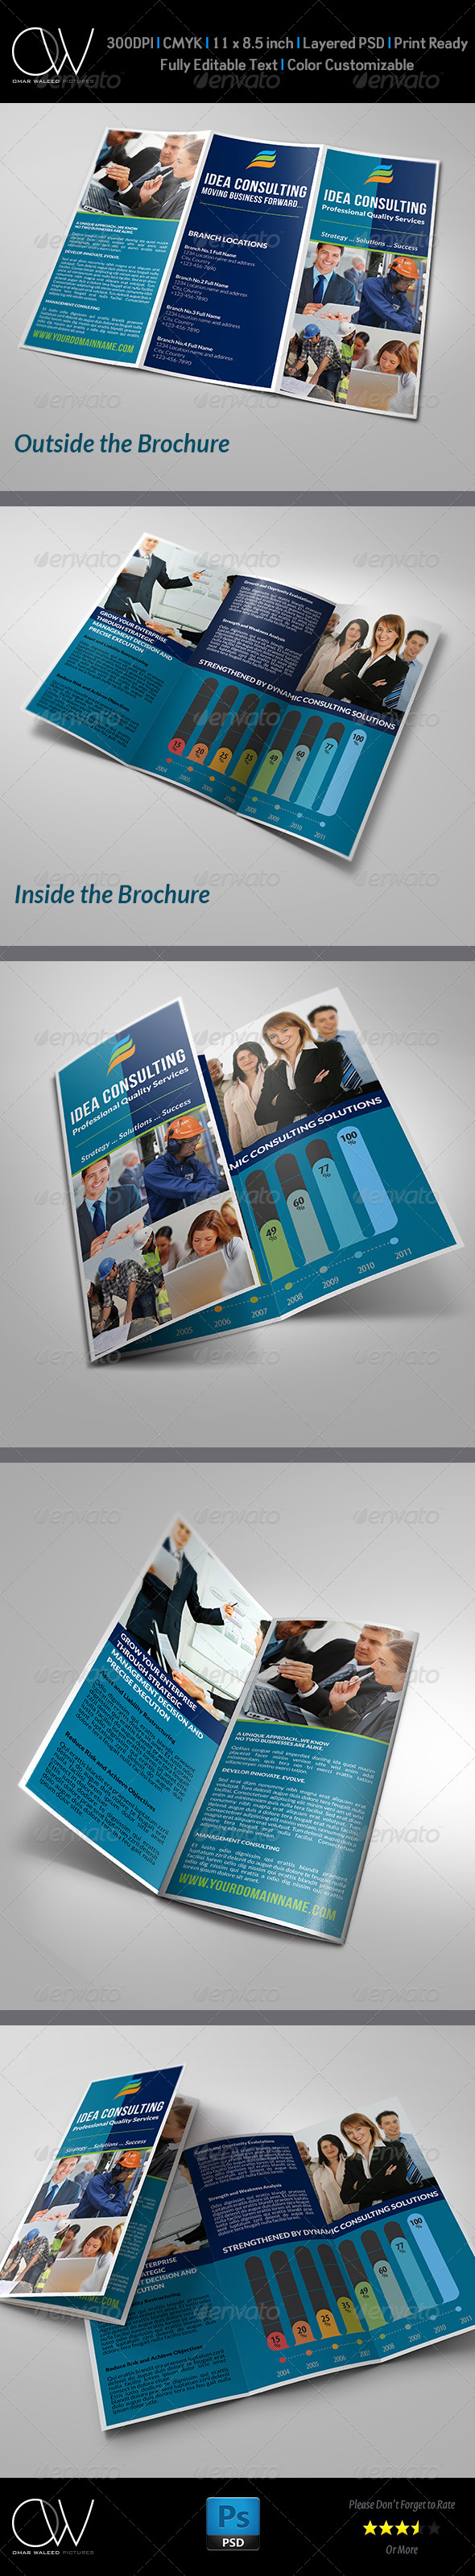 Corporate Business Tri-Fold Brochure Vol.2 - Corporate Brochures